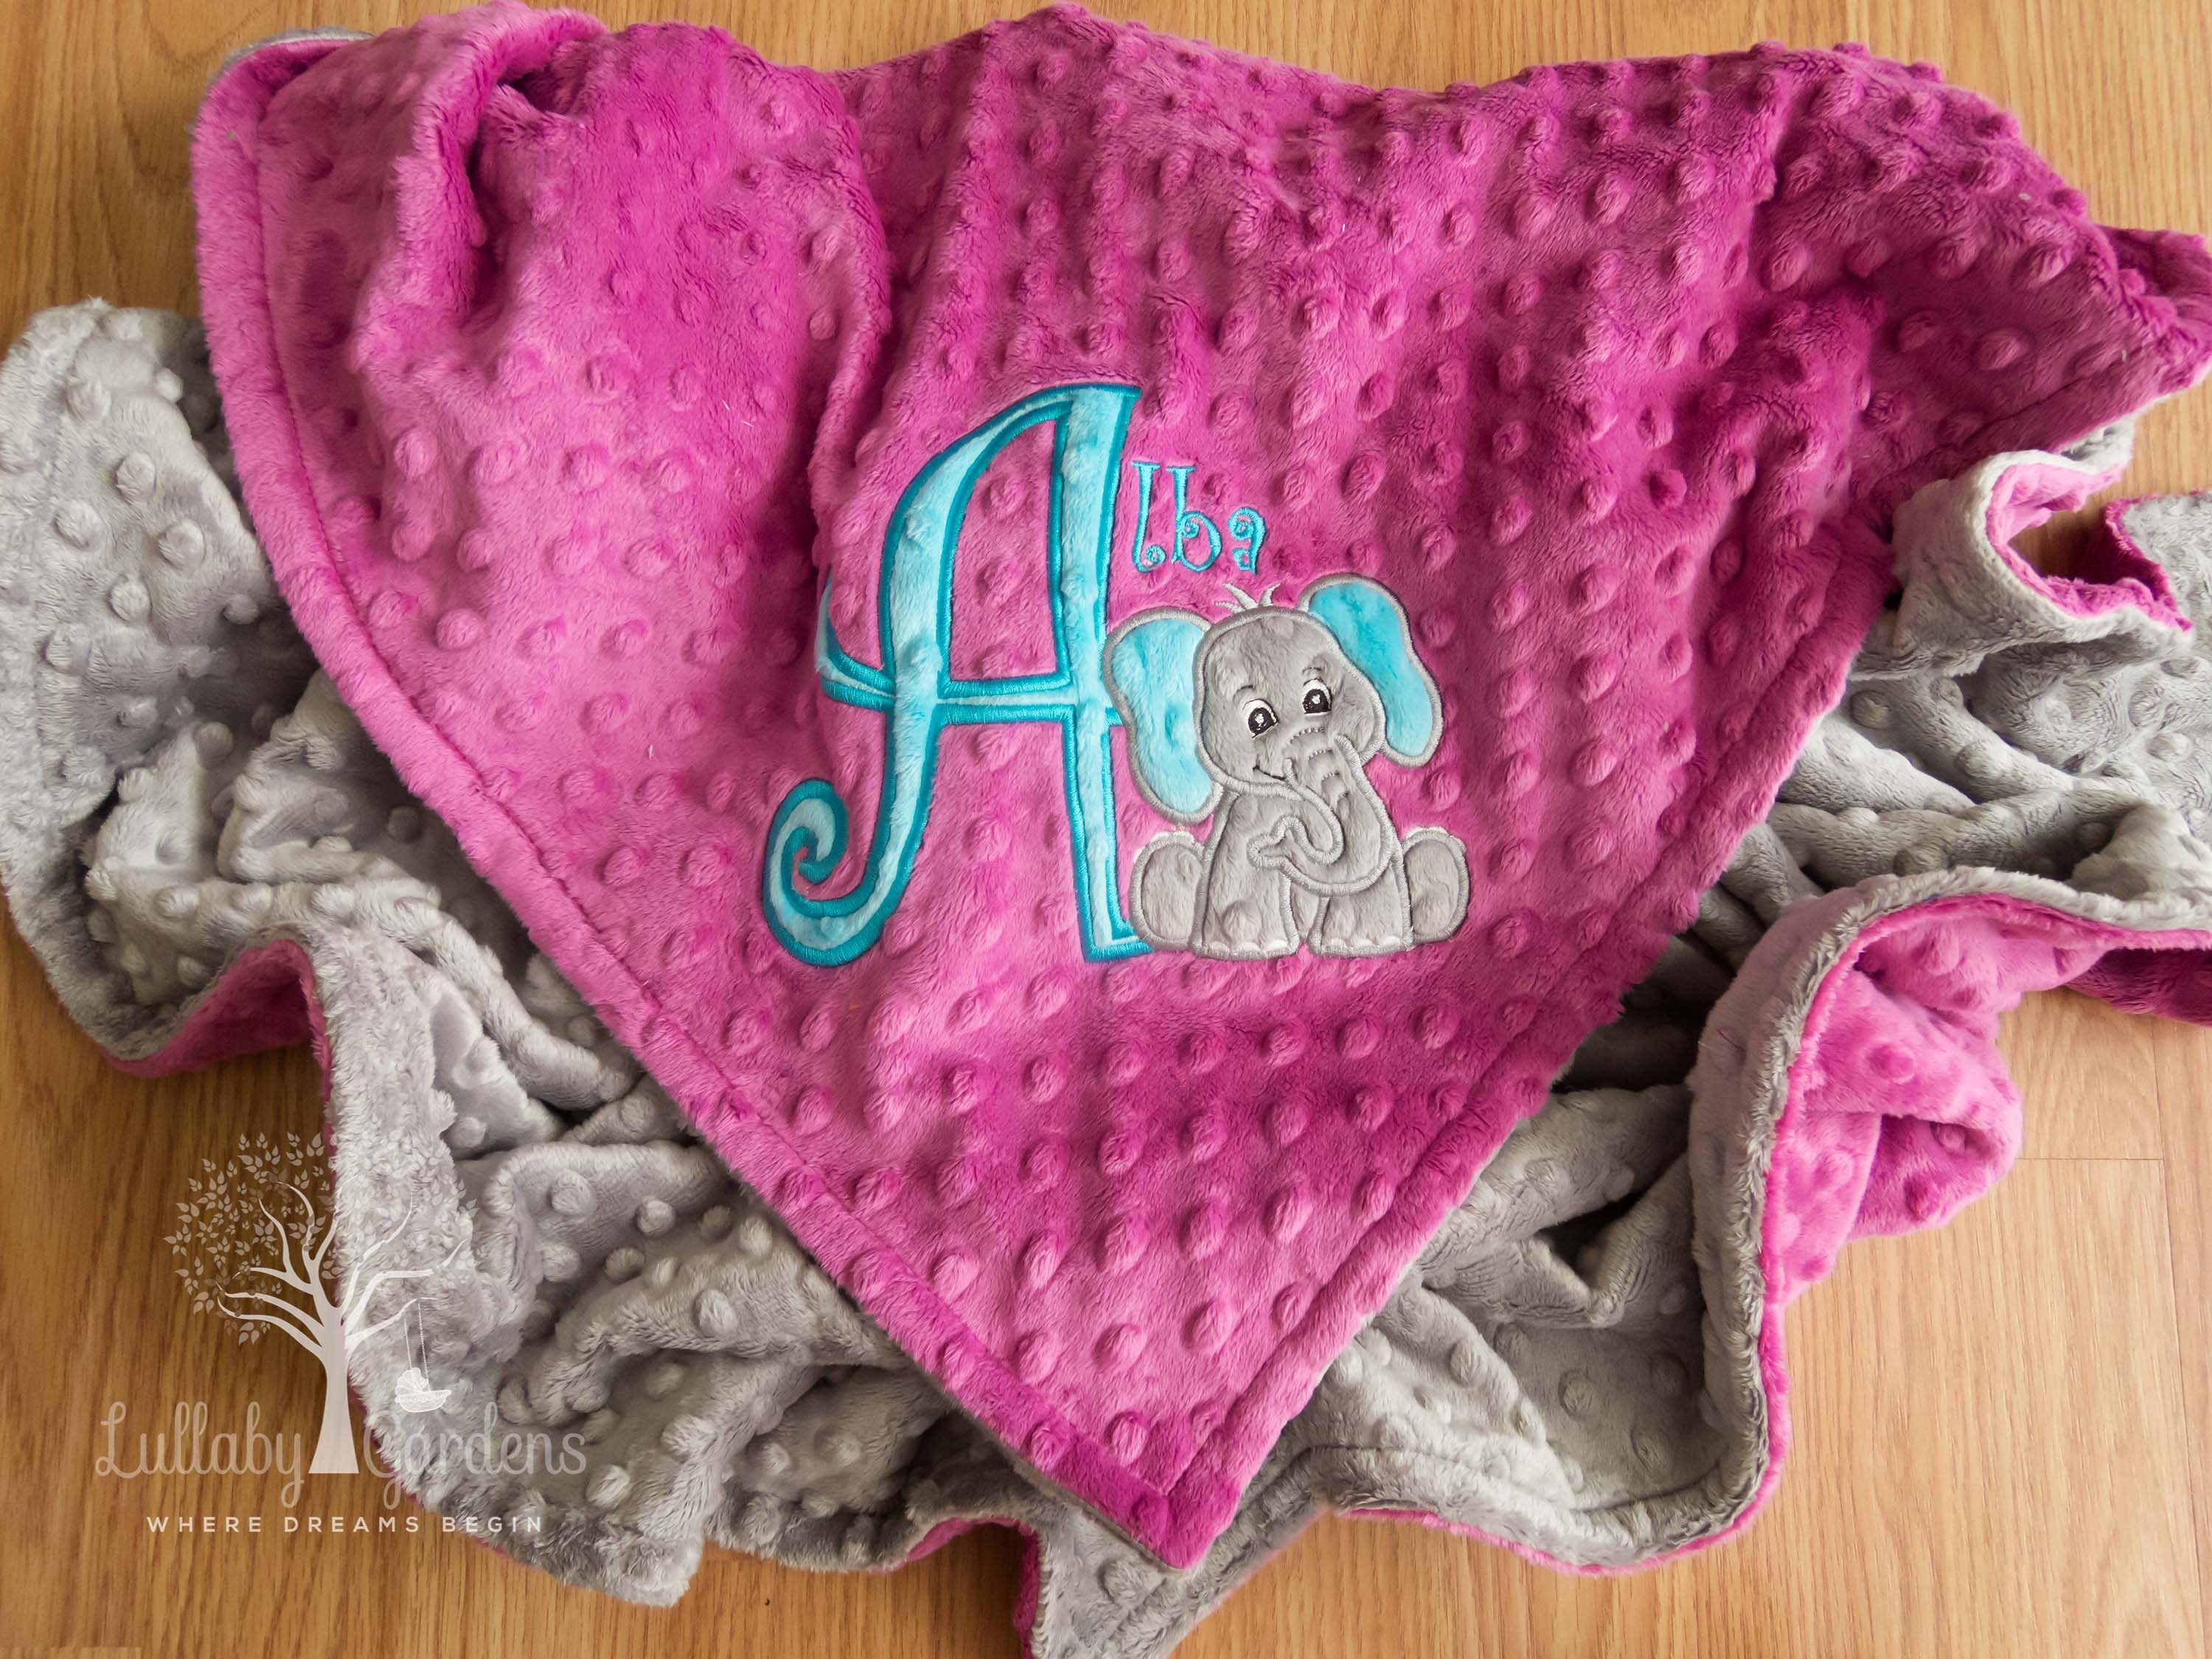 Personalized minky baby blanket personalized baby gifts elephant personalized minky baby blanket personalized baby gifts elephant minky blanket appliqued elephant minky negle Gallery